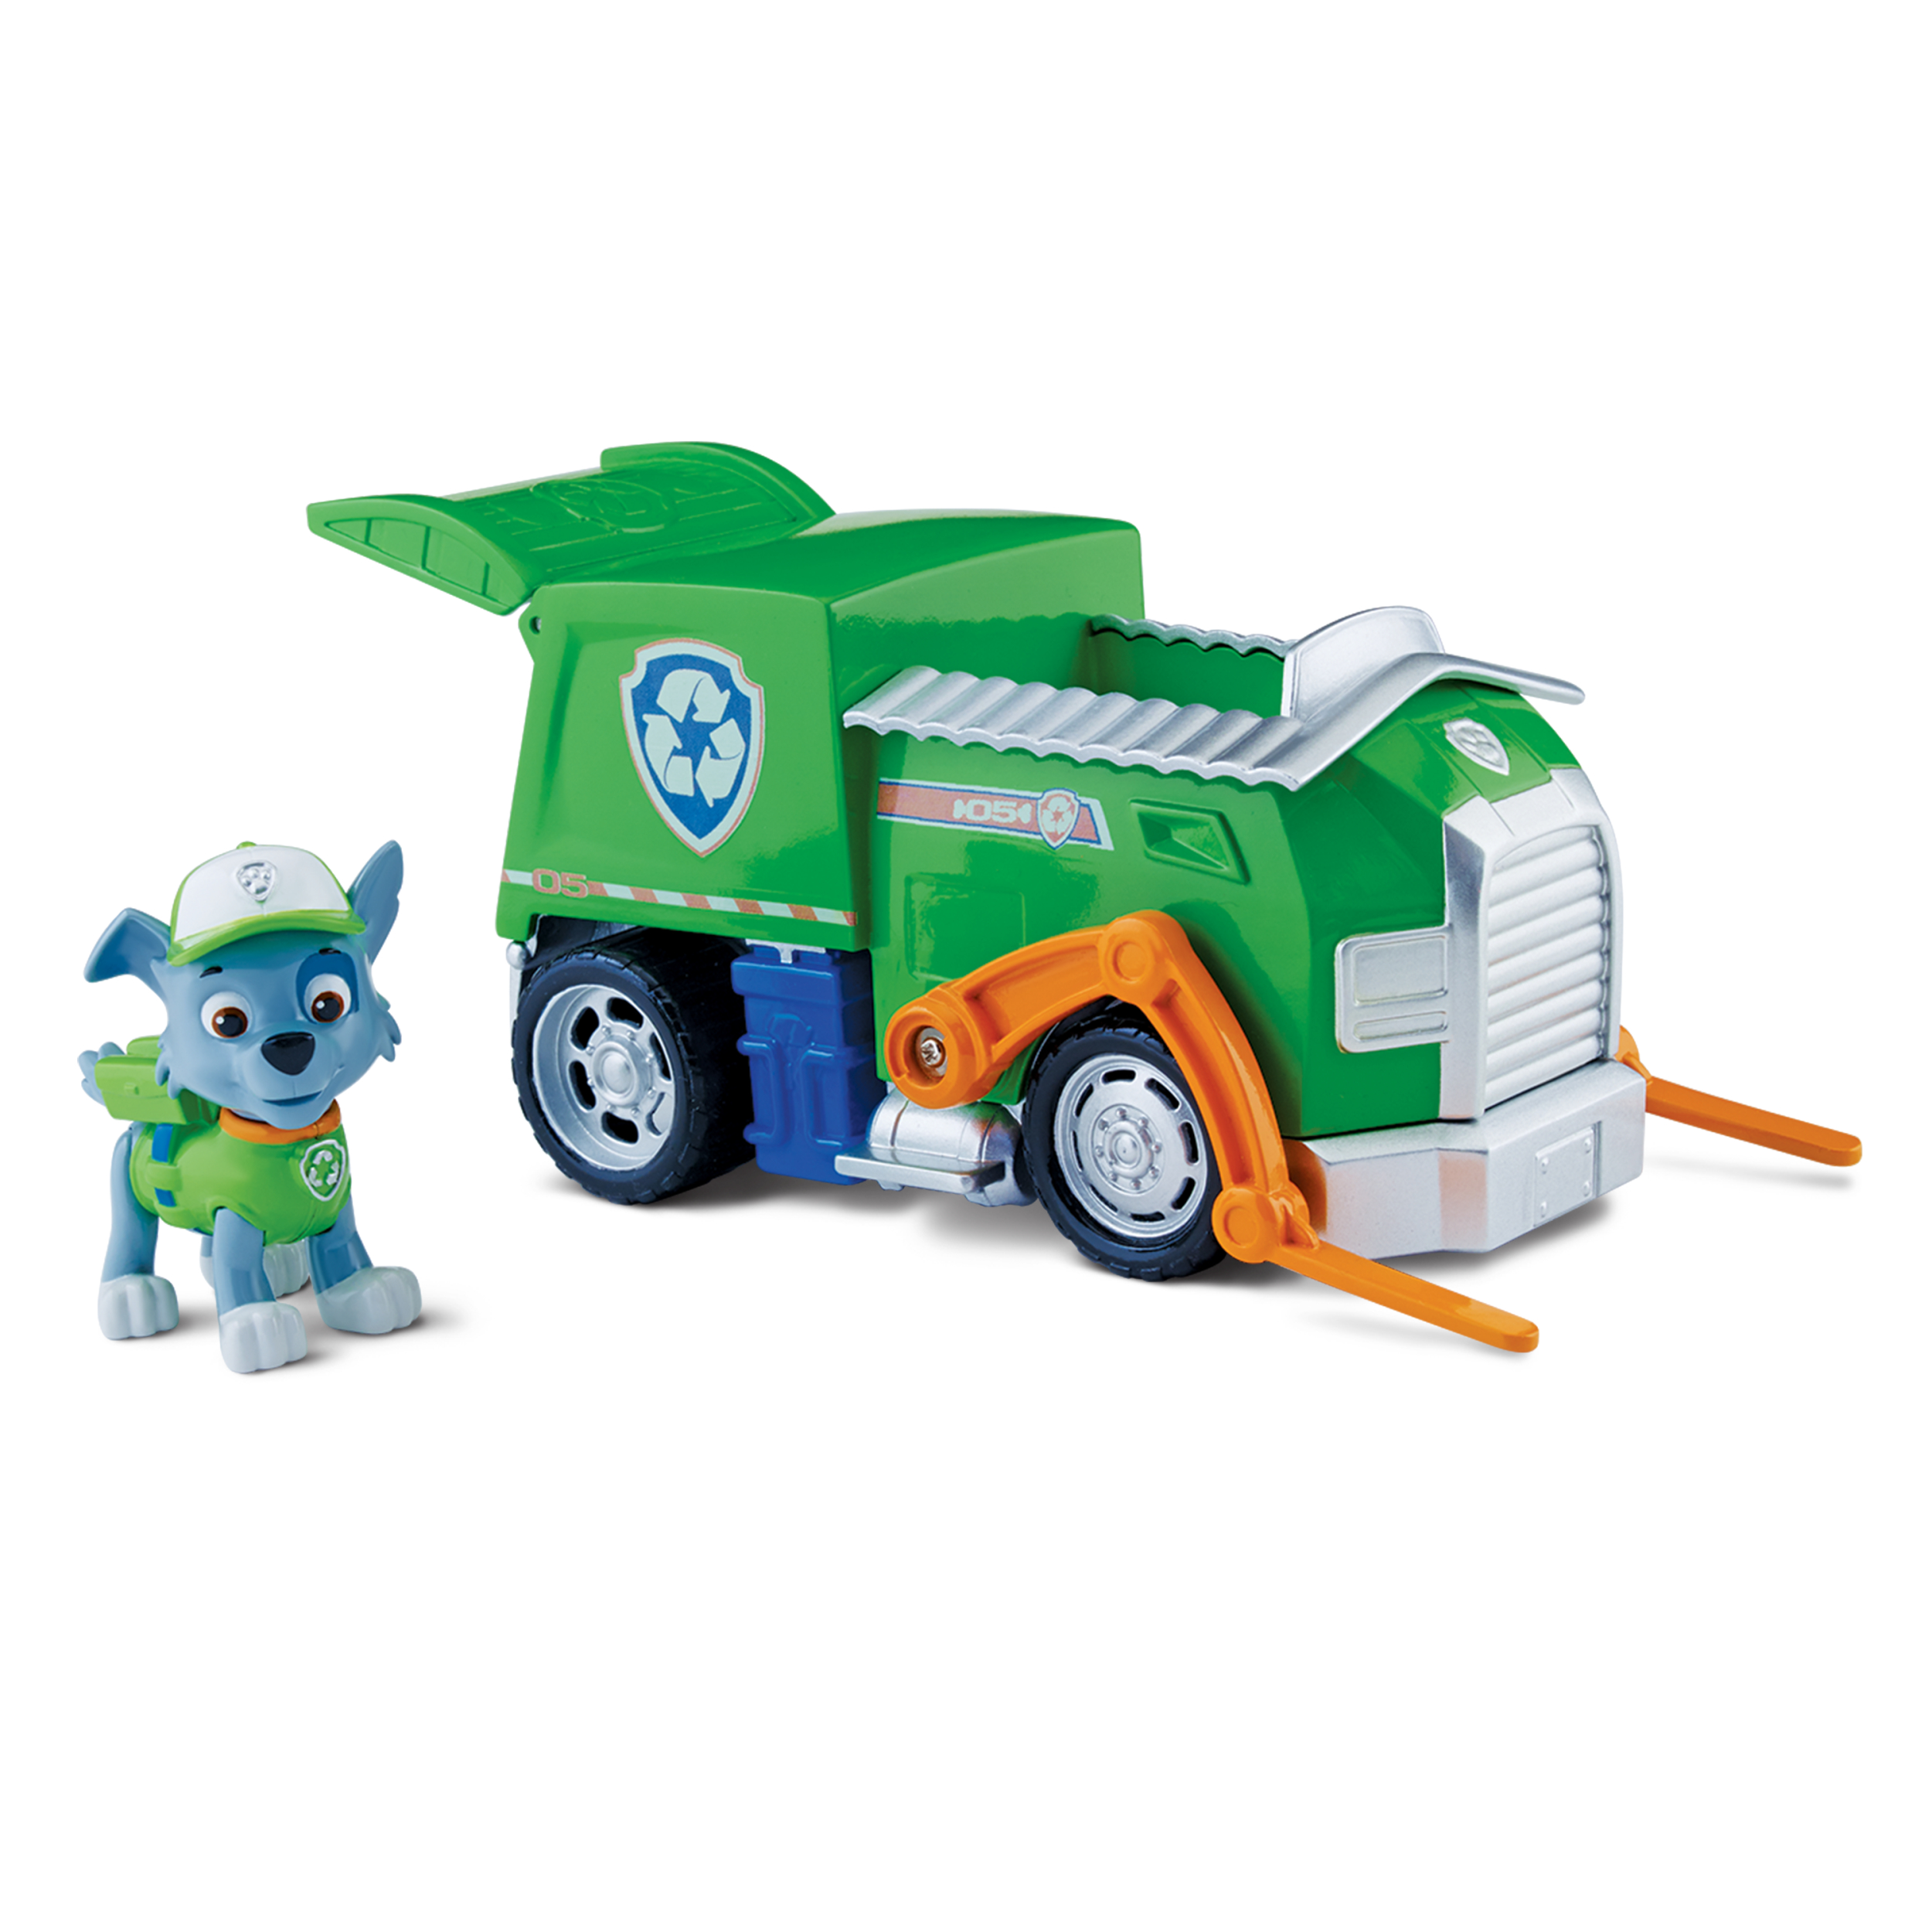 Paw Patrol Rocky′s Recycling Truck, Vehicle and Figure